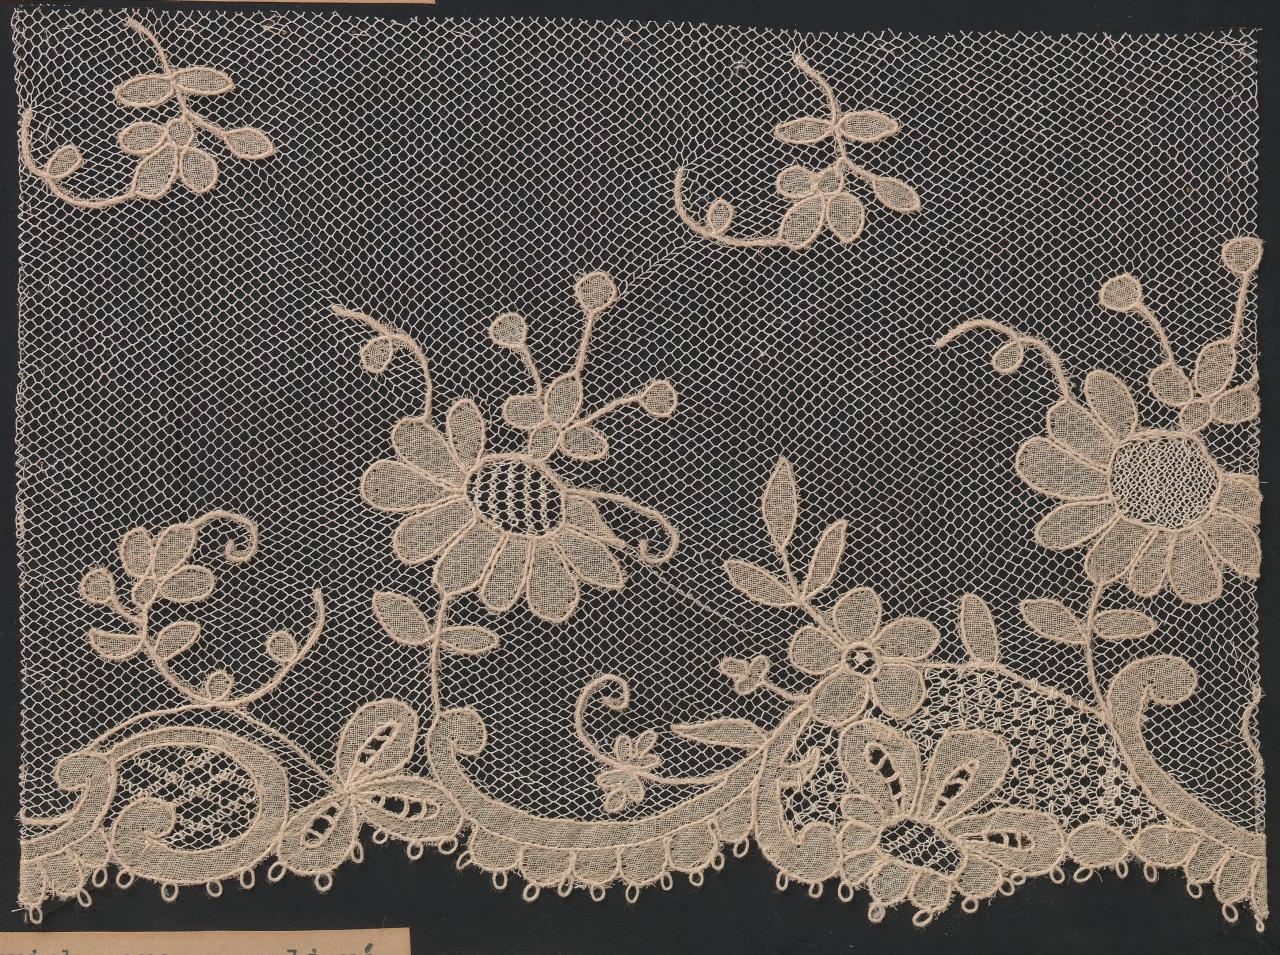 Carrickmacross appliqué lace